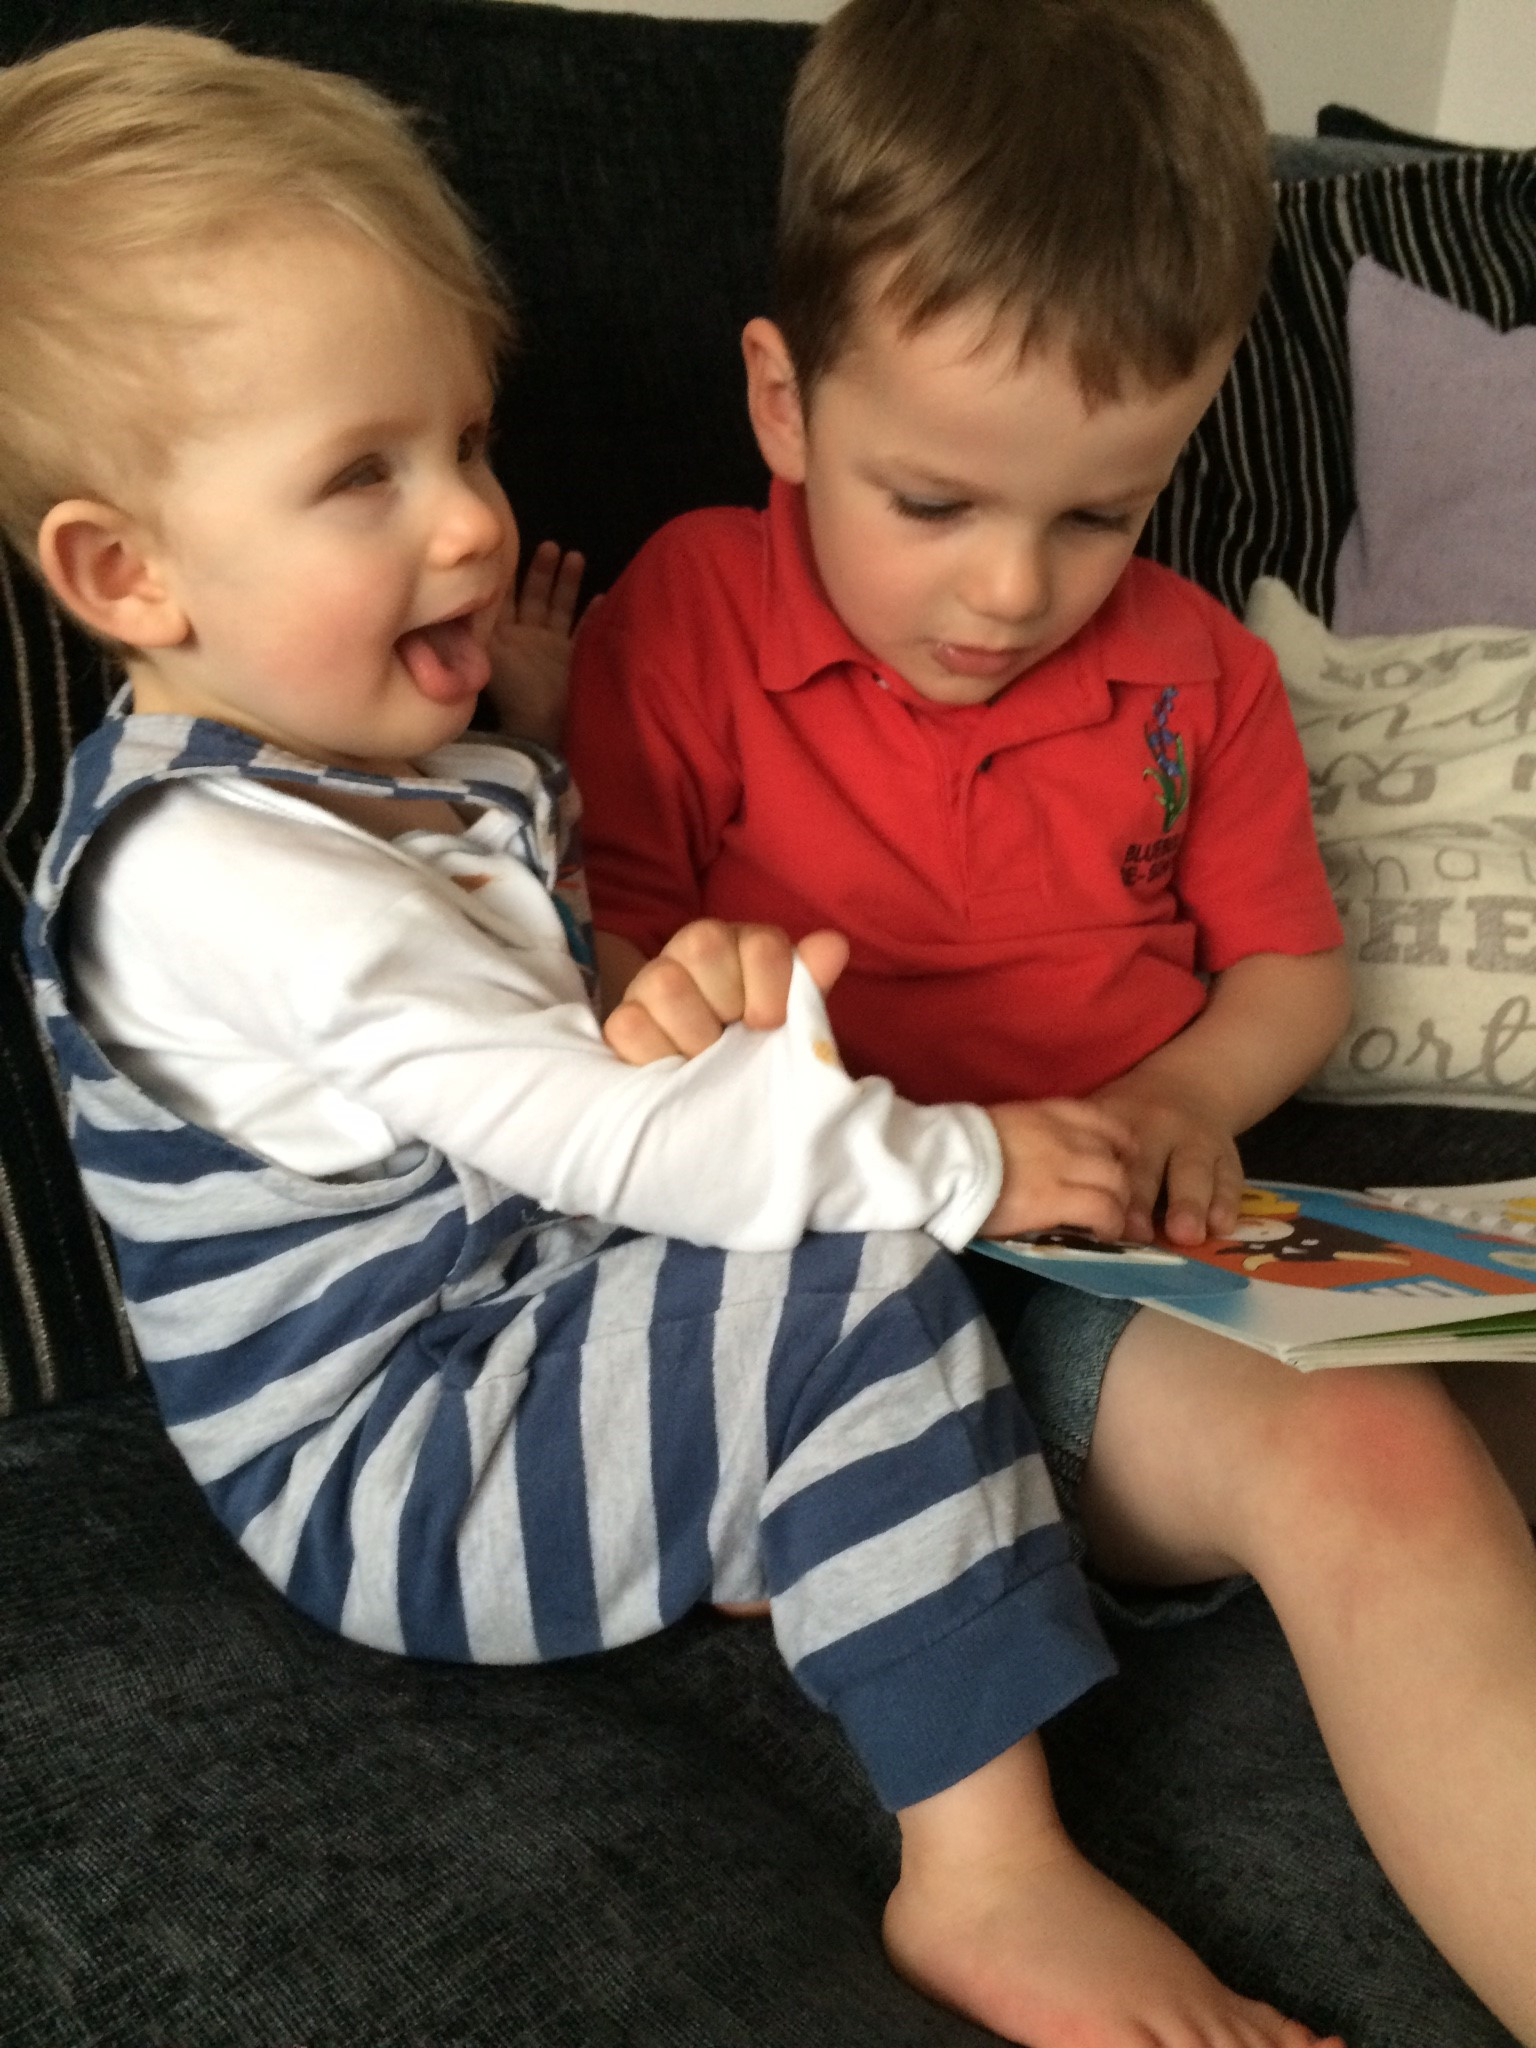 Alife and his brother Harrison reading together